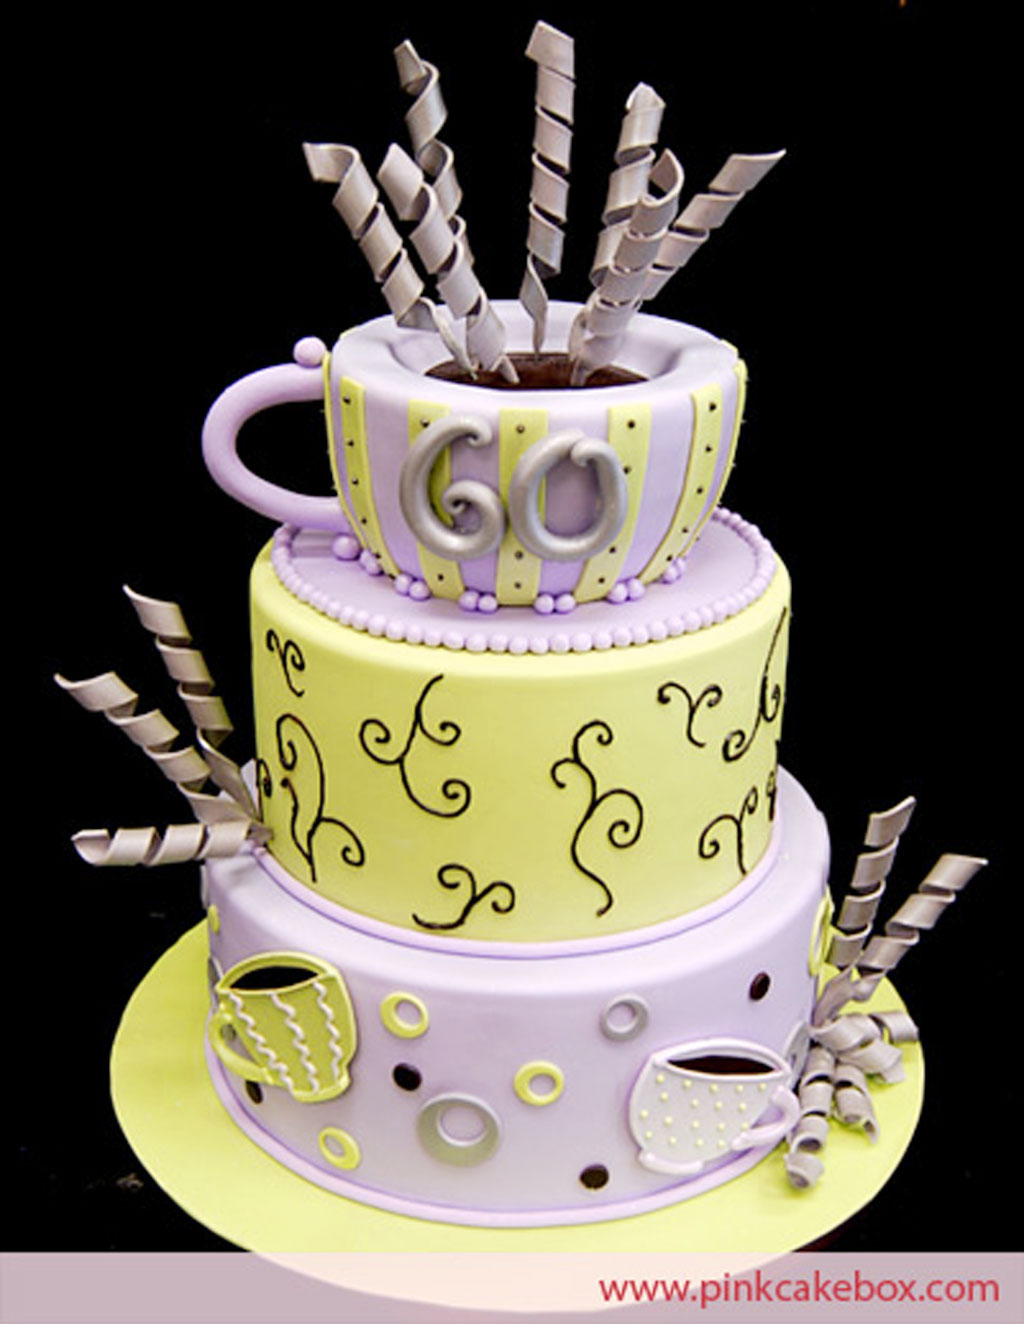 60th Birthday Cake Ideas For Women Birthday Cake - Cake ...